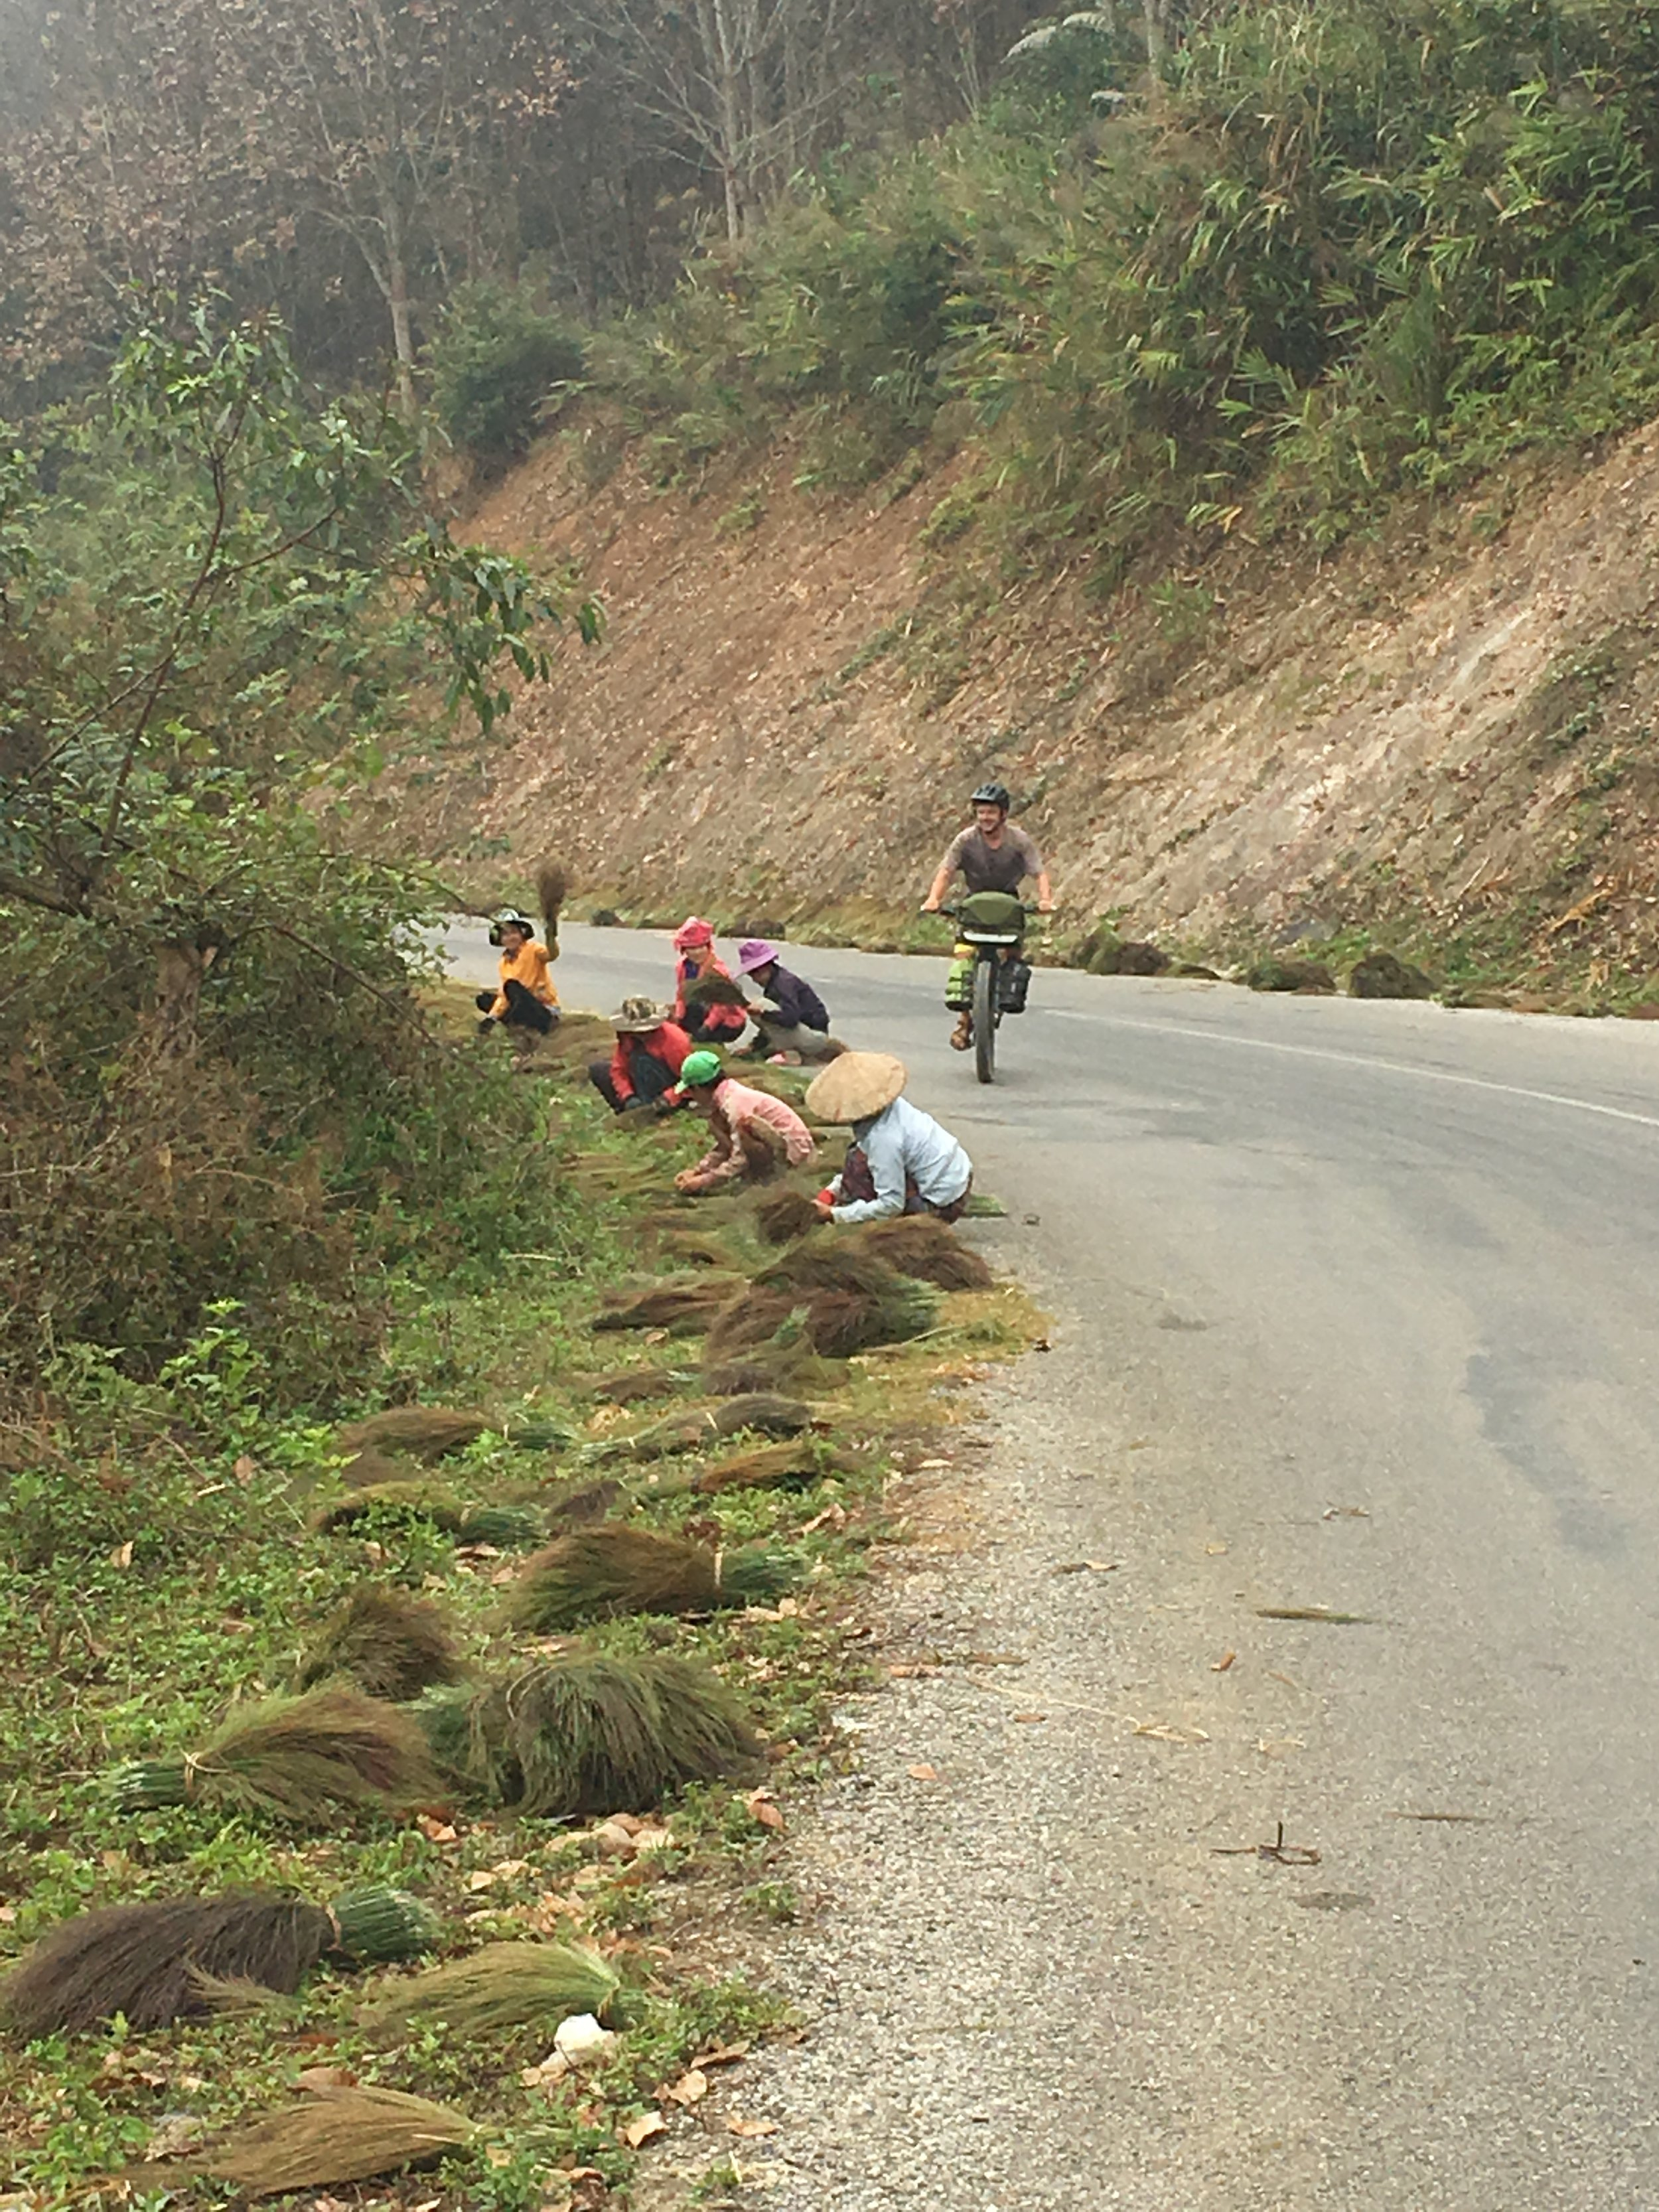 Christian cycling passed the local Laos women working on the side of the road. The woman at the back had the biggest smile on her face as we rode passed